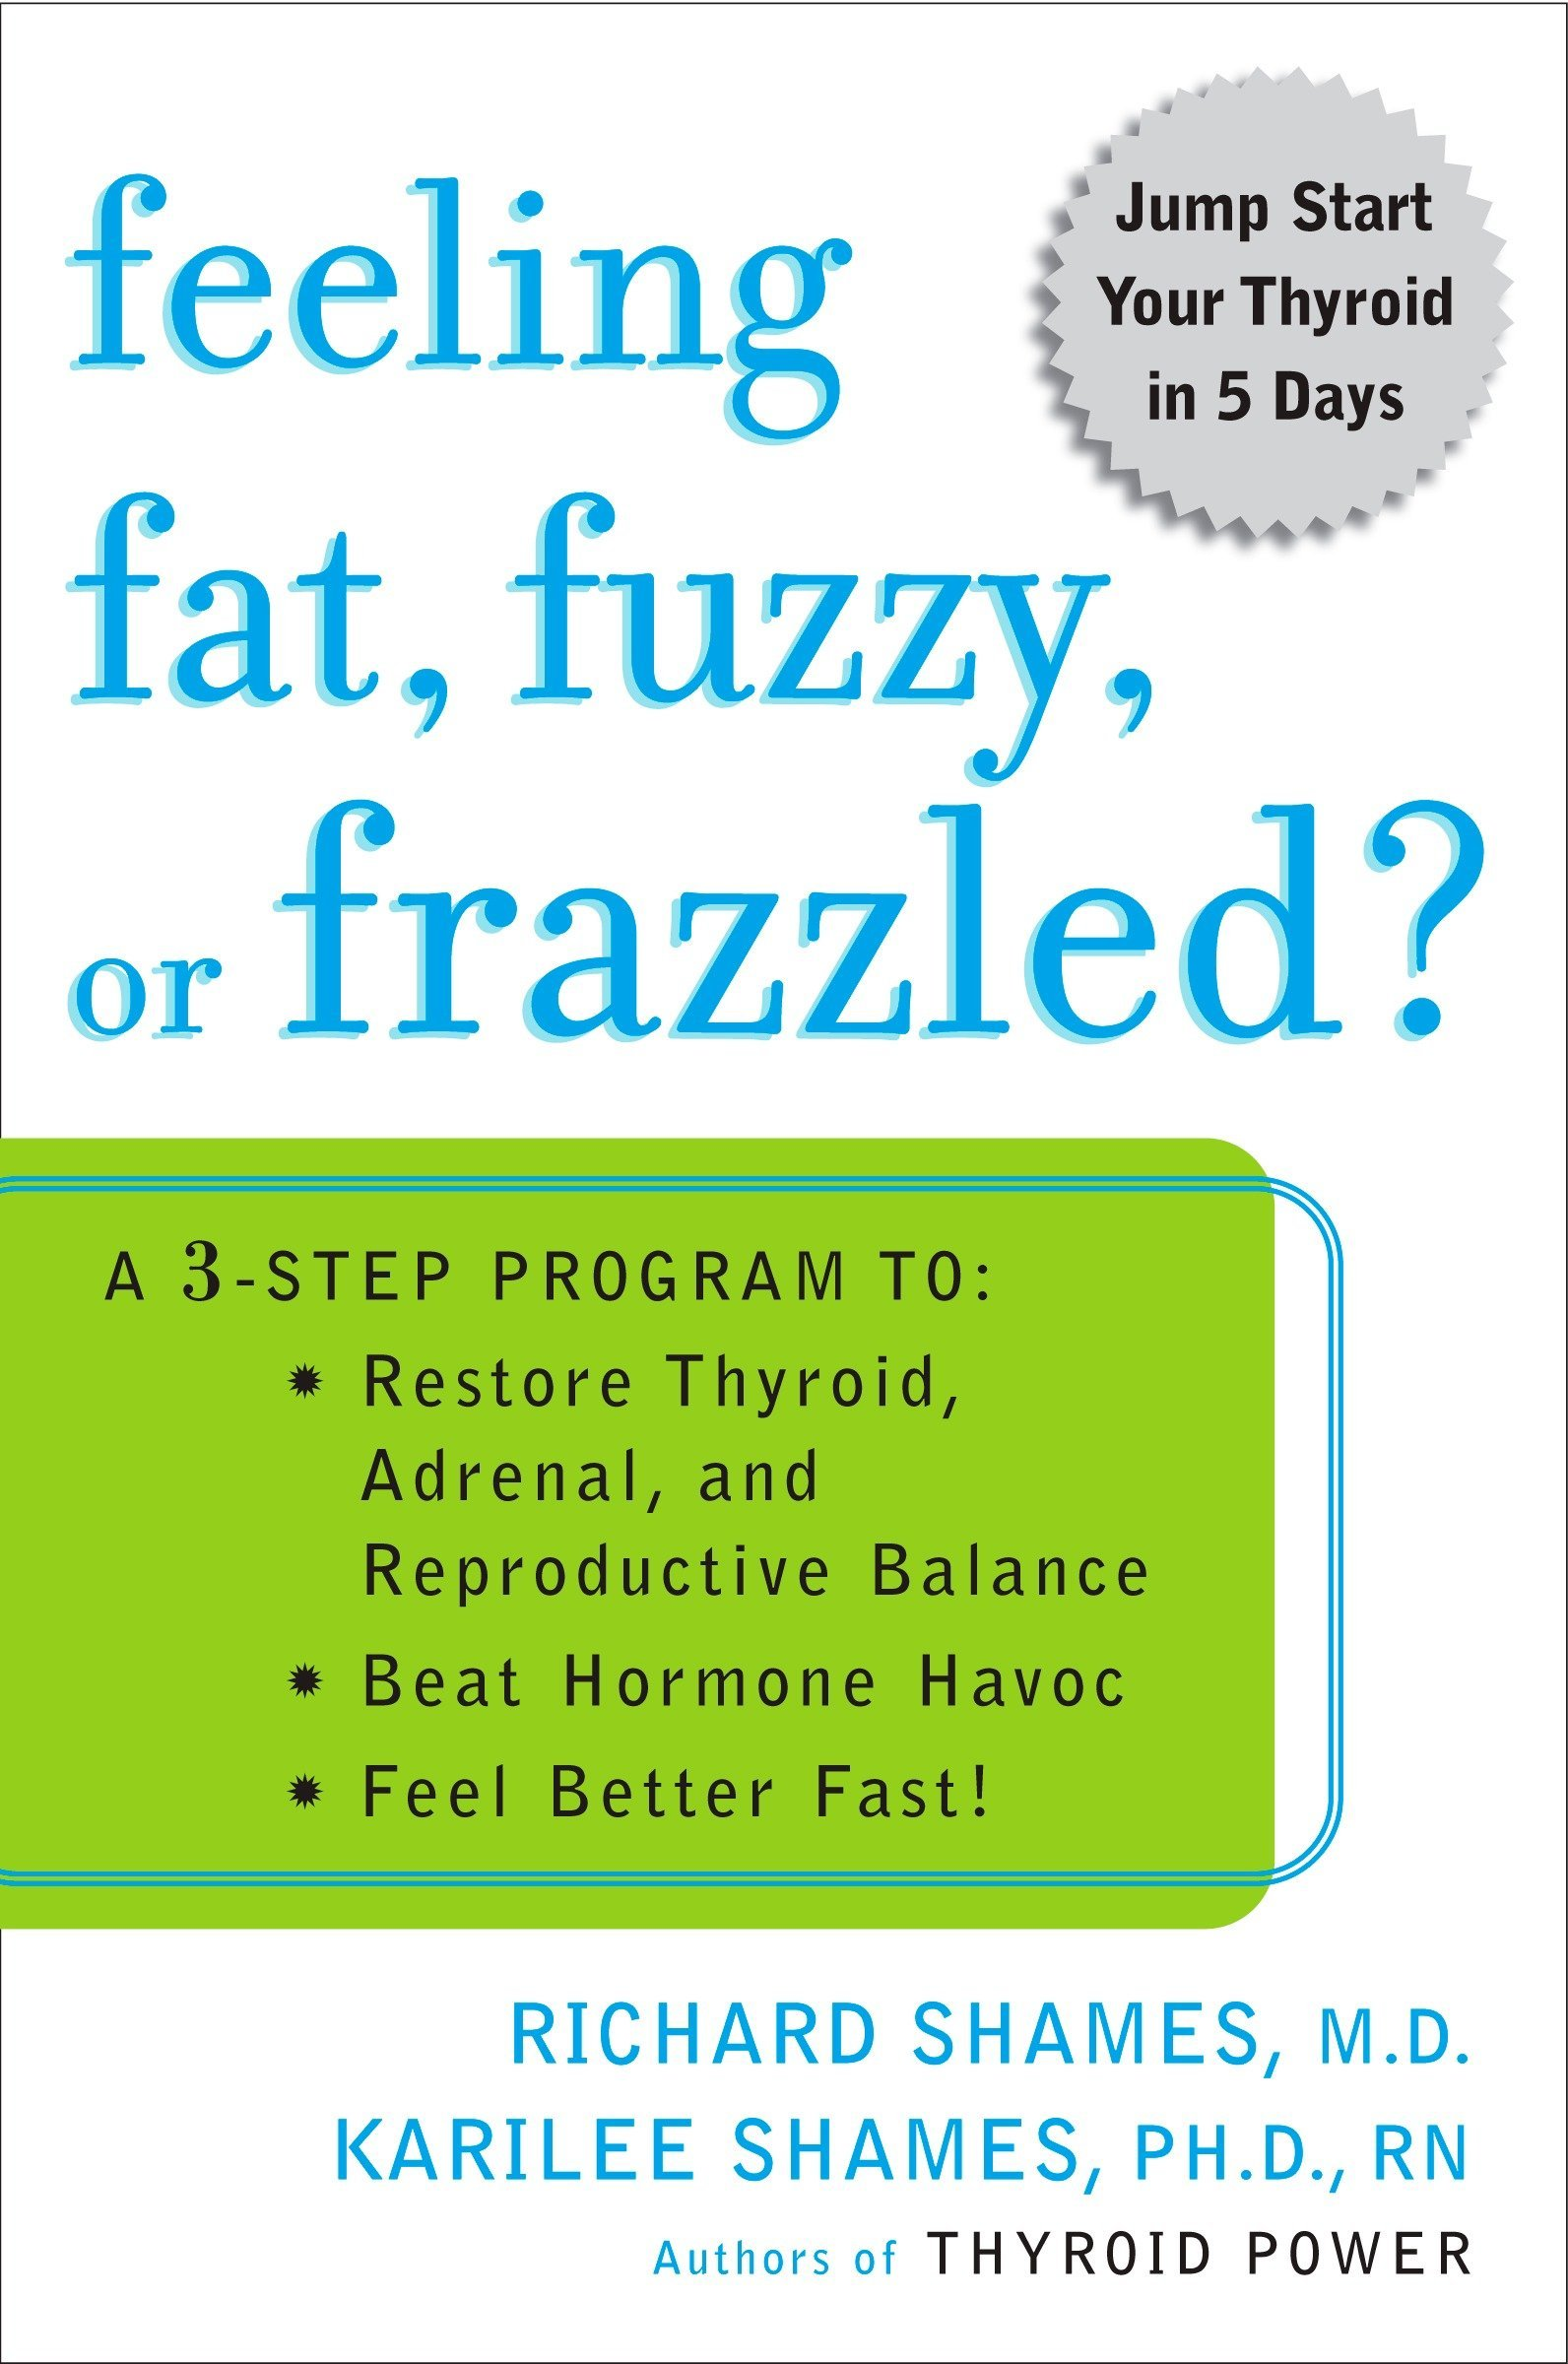 Feeling Fat, Fuzzy, or Frazzled?: A 3-Step Program to: Restore Thyroid, Adrenal, and Reproductive Balance, Beat Ho rmone Havoc, and Feel Better Fast! pdf